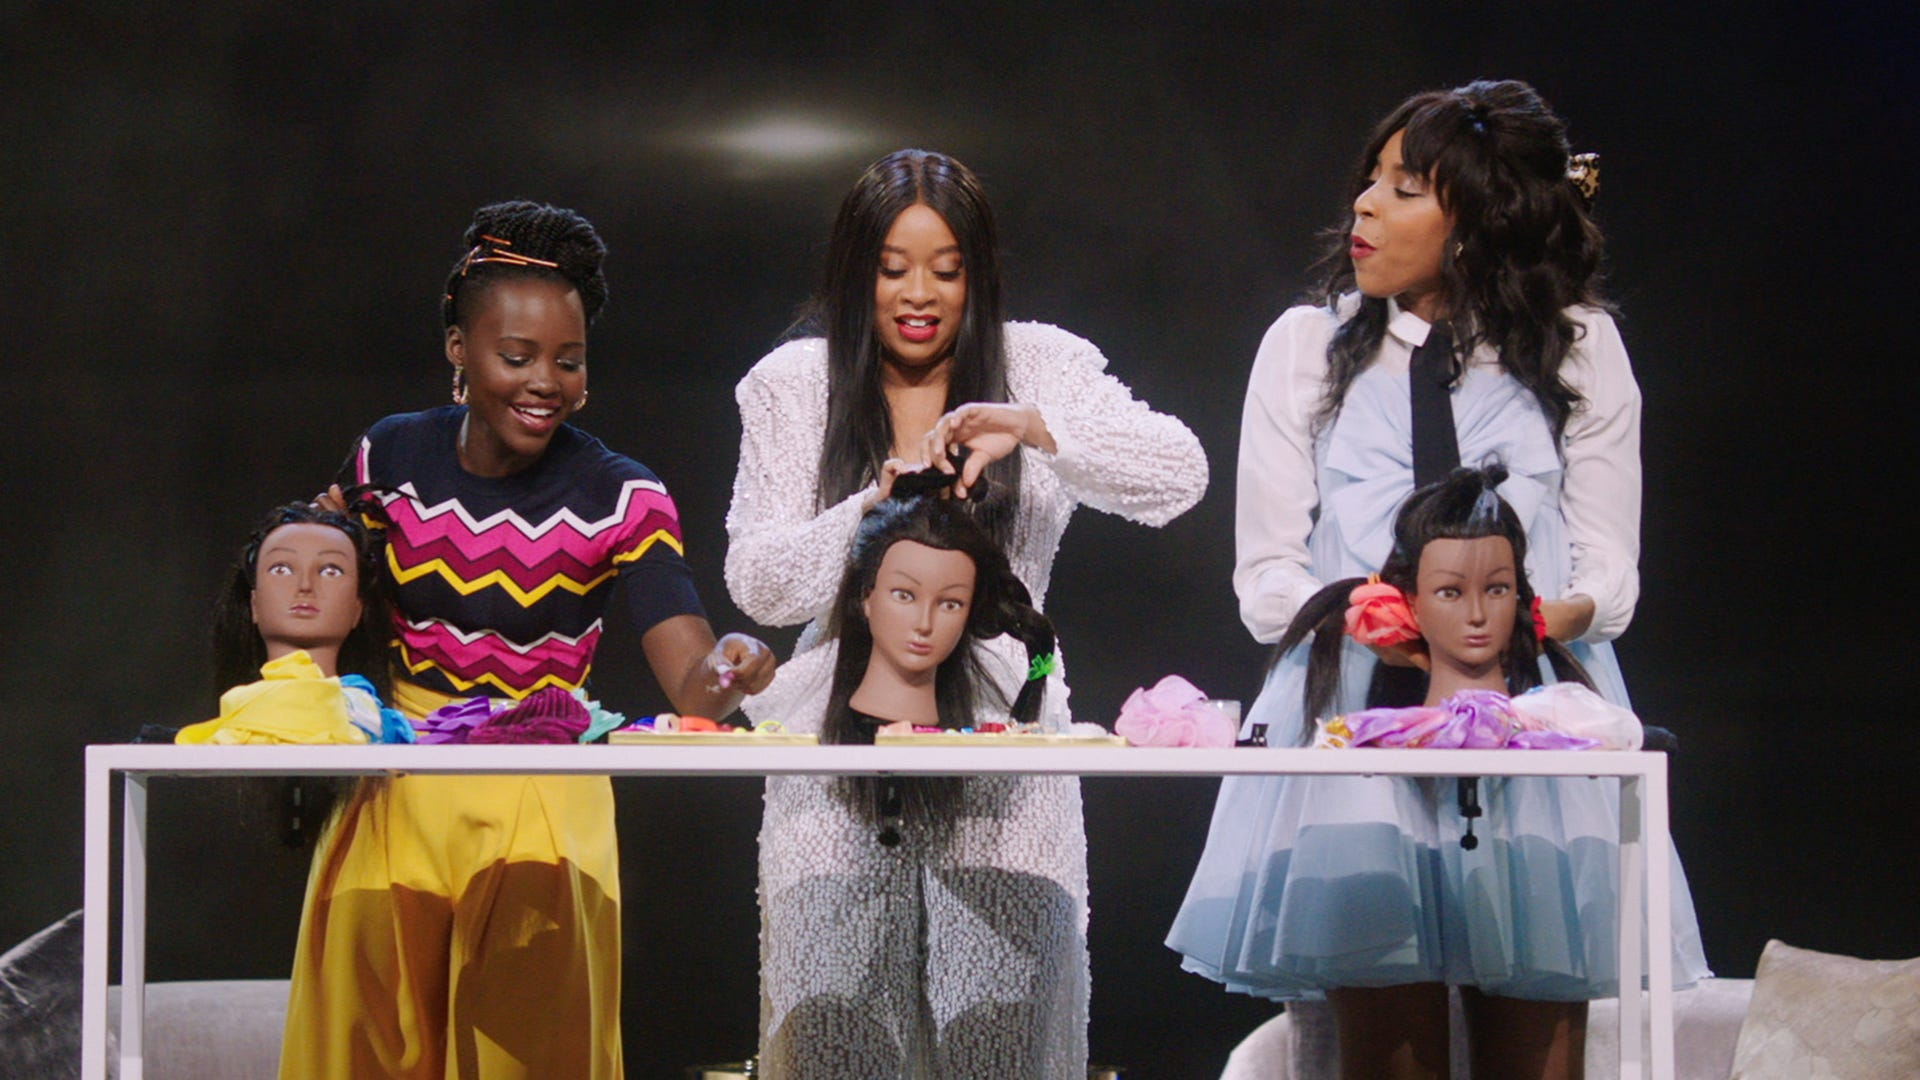 Lupita Nyong'o, Phoebe Robinson and Jessica Williams, 2 Dope Queens